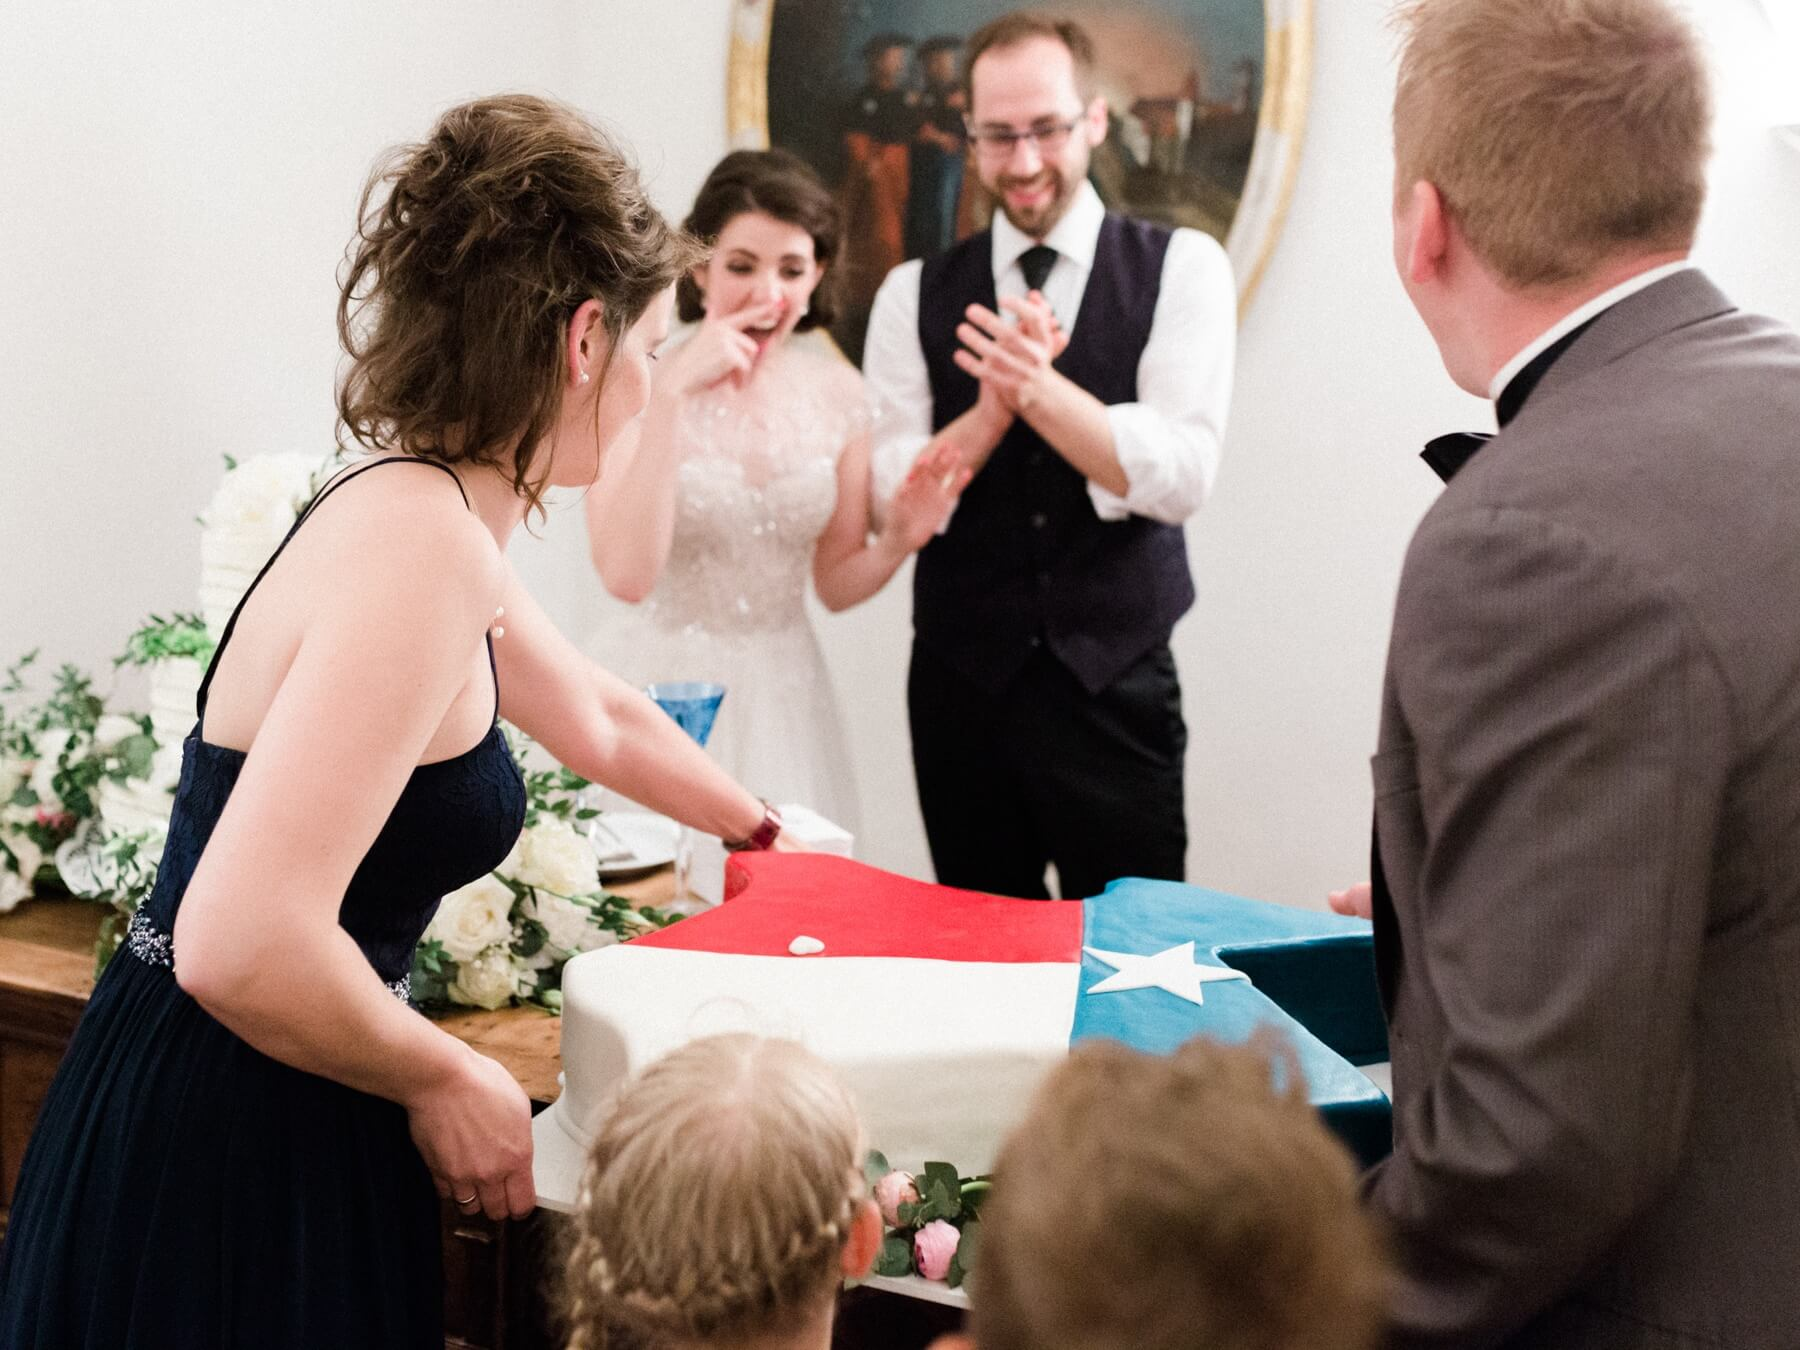 The groom's Texas-sized wedding cake was a hit with the American guests.